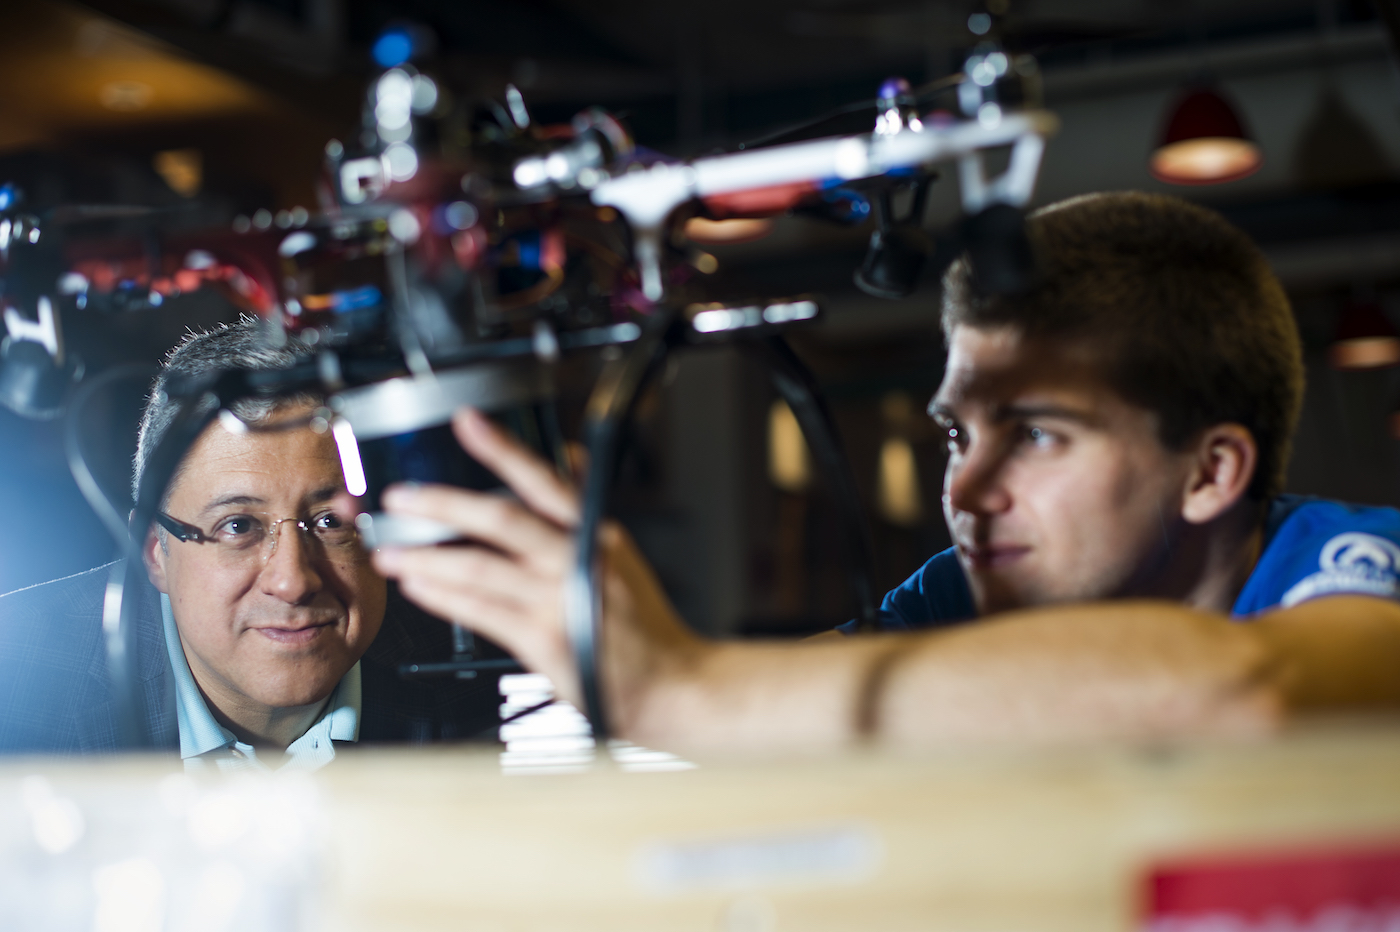 Taskin Padir and his student Nicolas Binford work on a hexi-copter drone. Padir's lab is developing aerial robots for damage detection after disasters. Photo by Adam Glanzman/Northeastern University